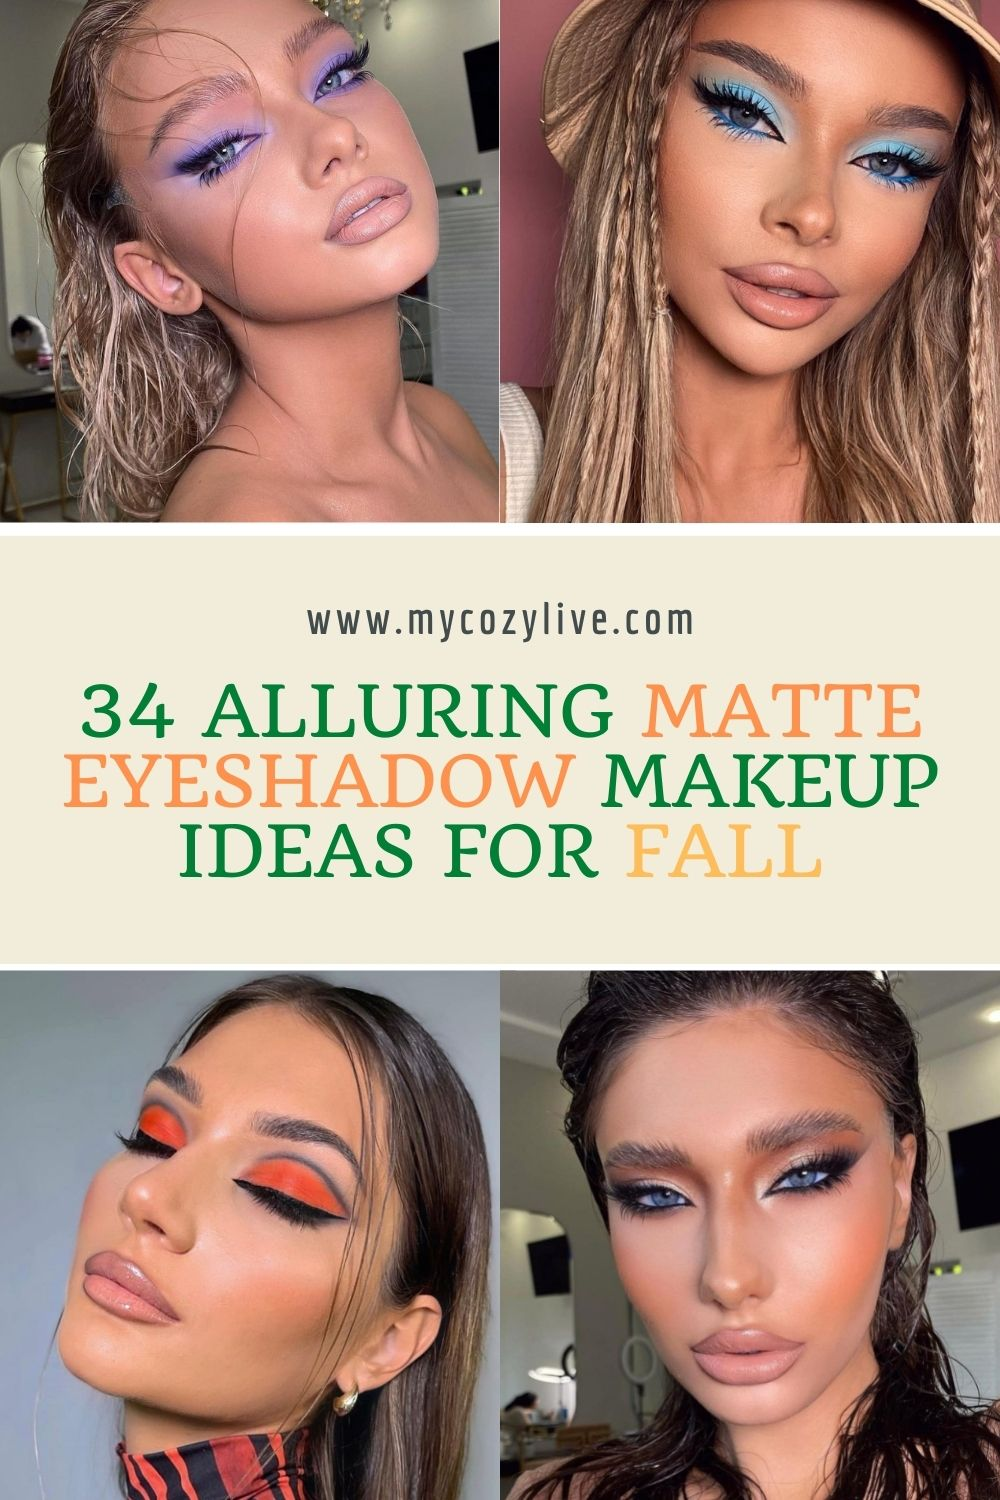 34 Incredible Fall makeup looks with matte eyeshadow ideas 2021